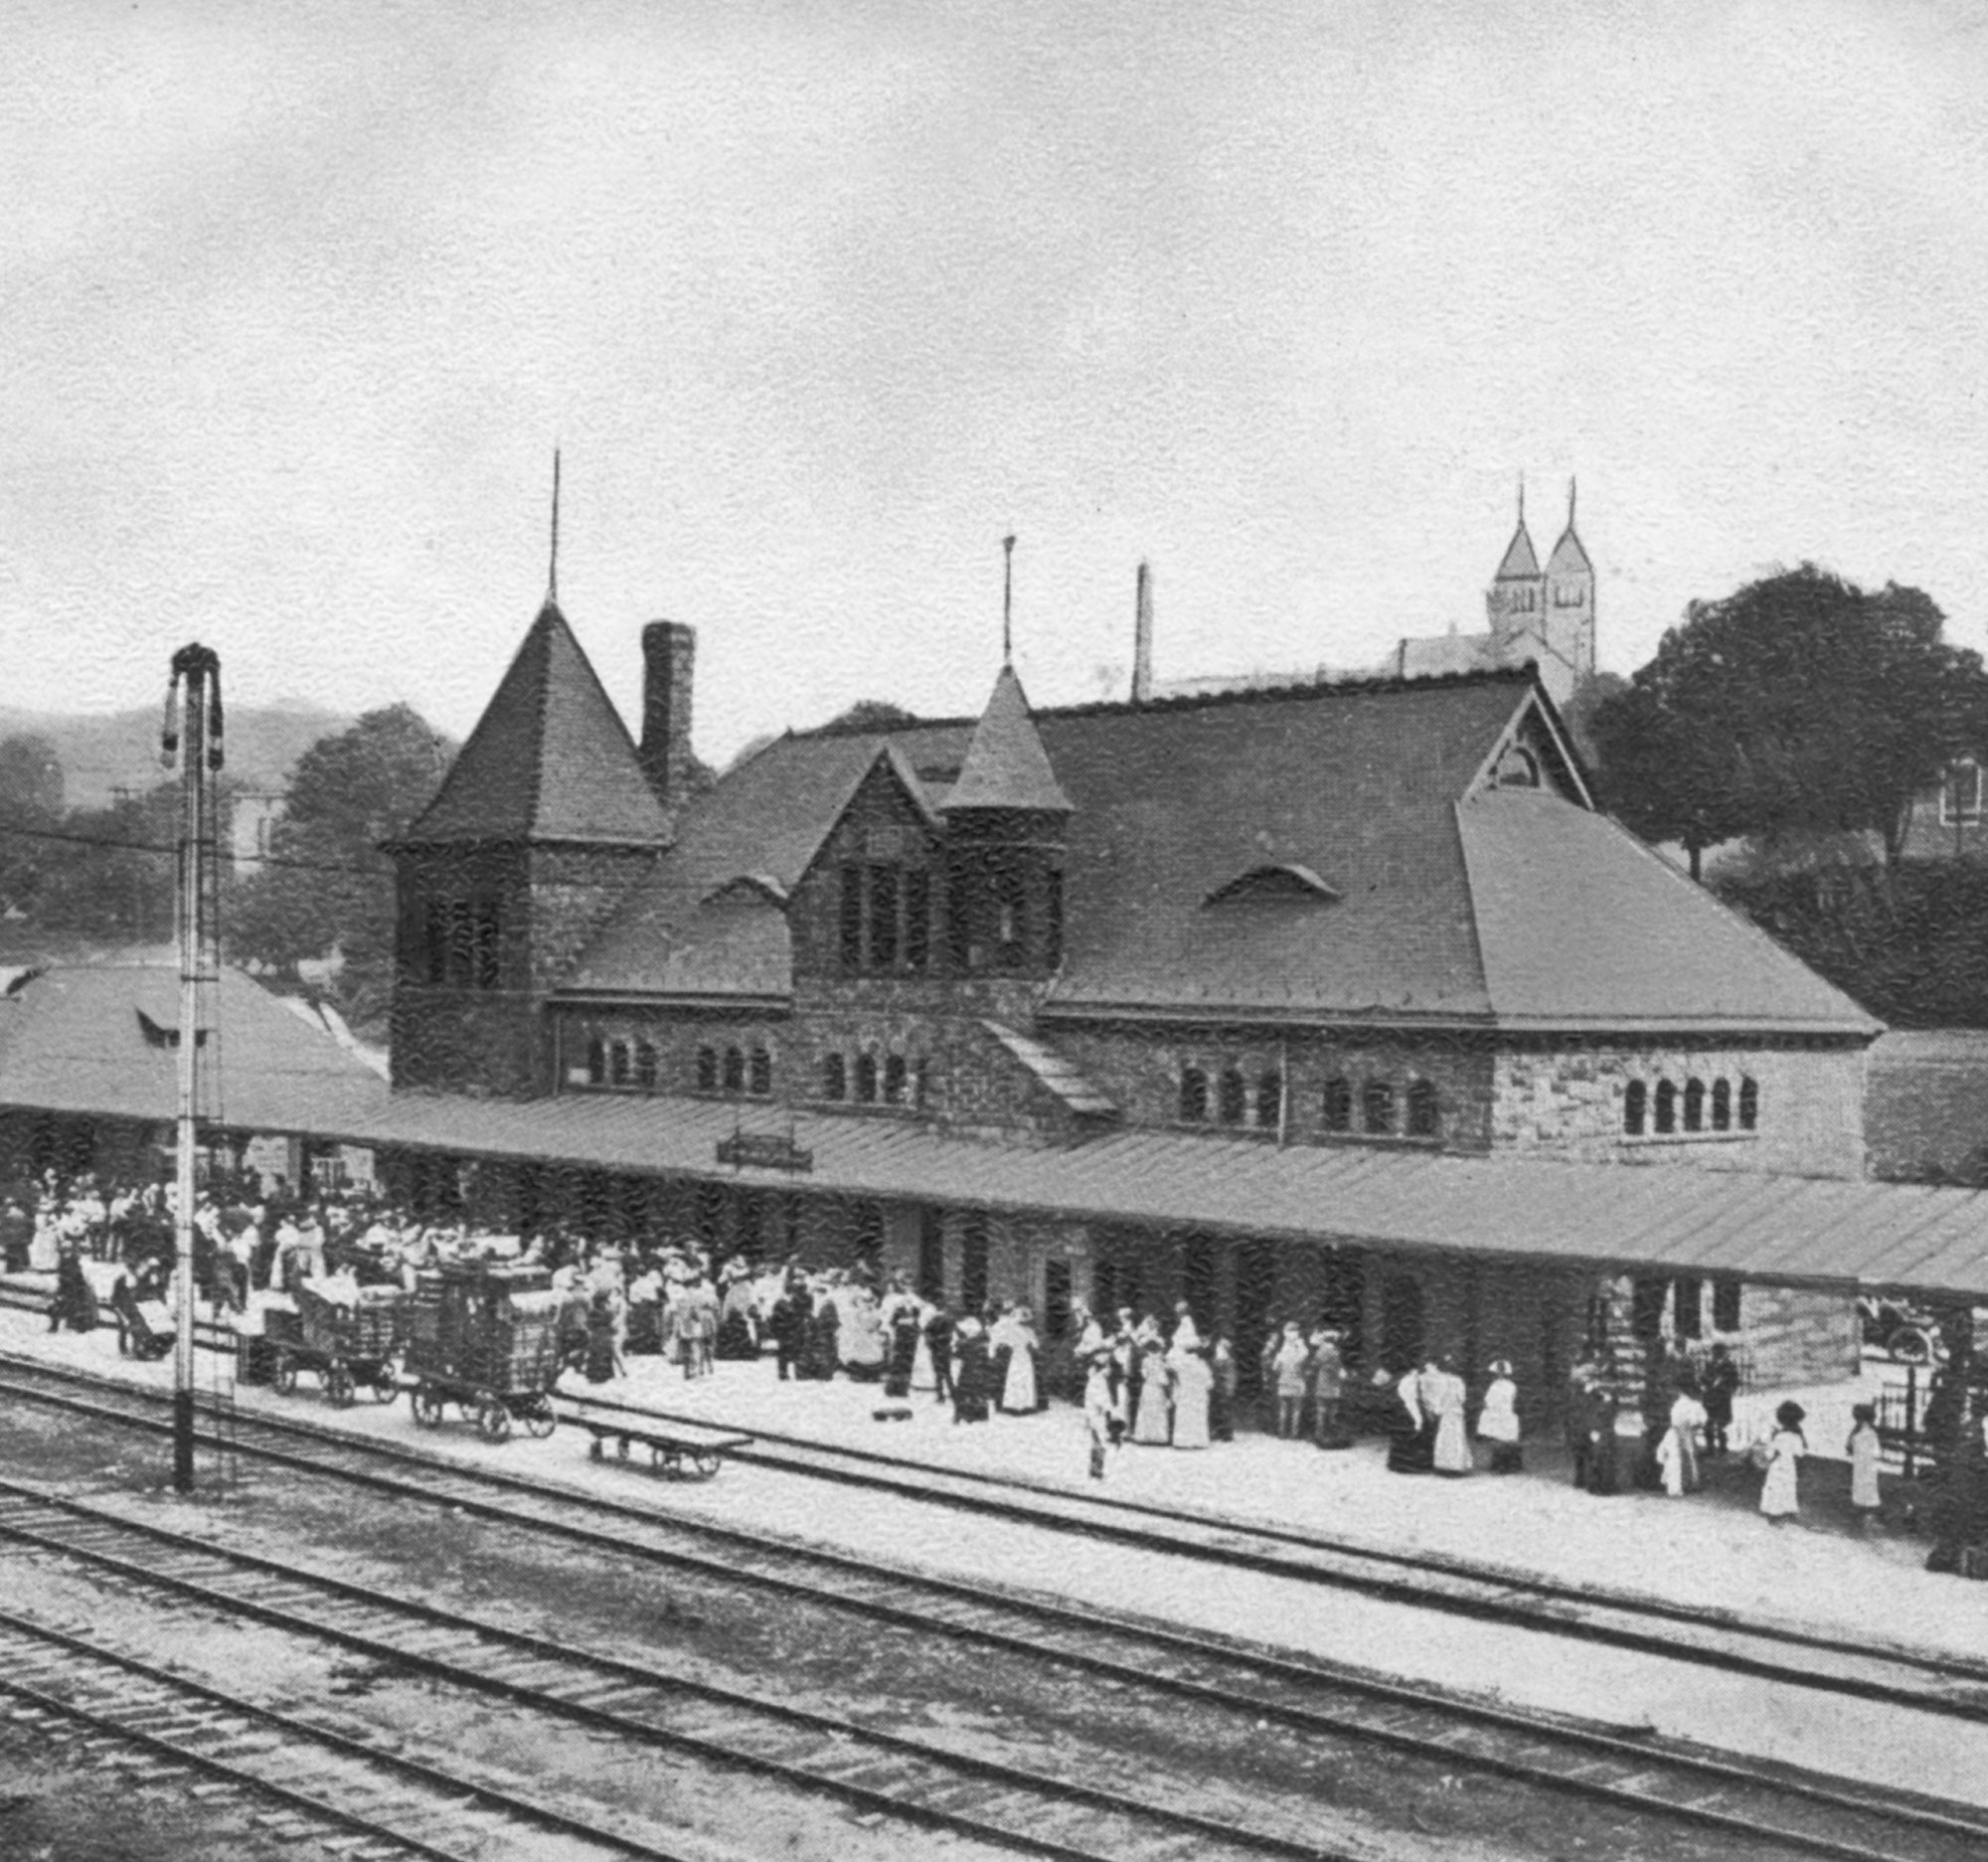 Michigan Central Railroad Depot, 1887 image